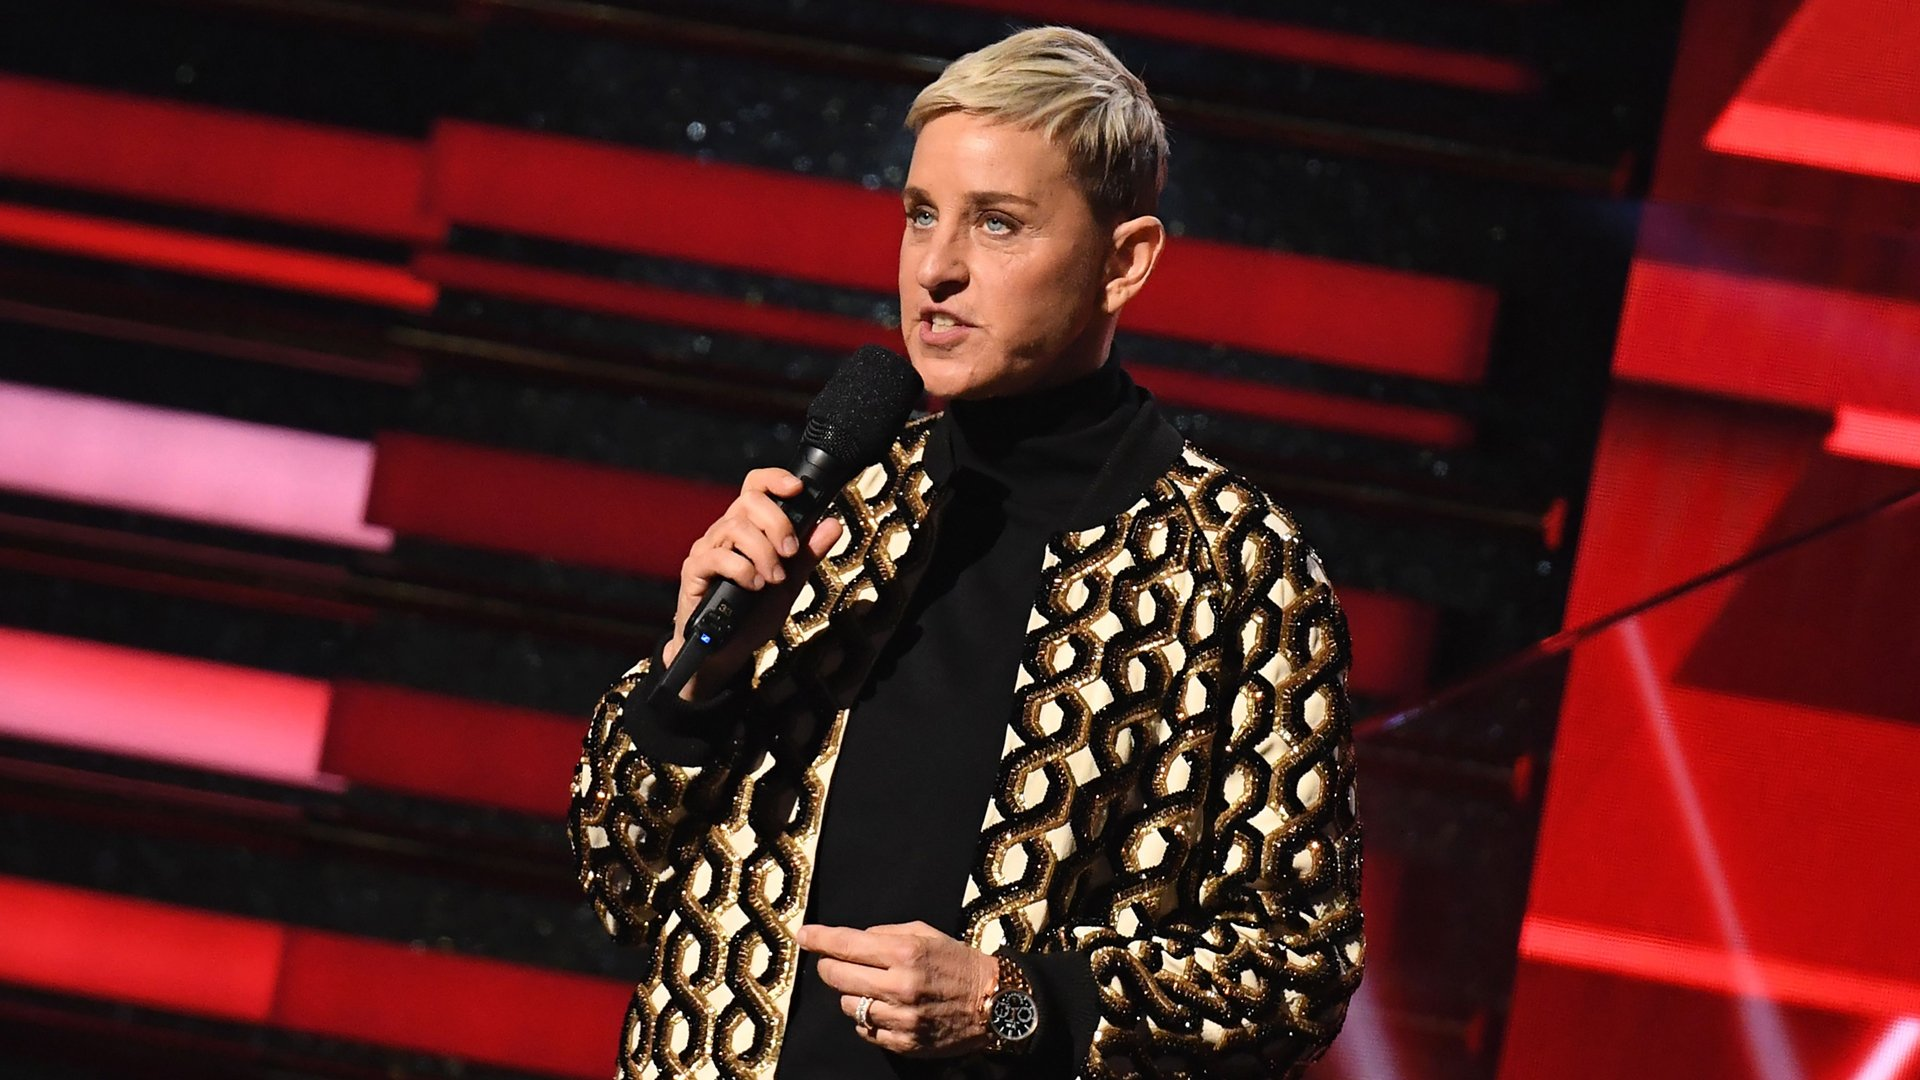 Ellen DeGeneres speaks during the 62nd Annual Grammy Awards on Jan. 26, 2020, in Los Angeles. (Credit: Robyn Beck/AFP via Getty Images)